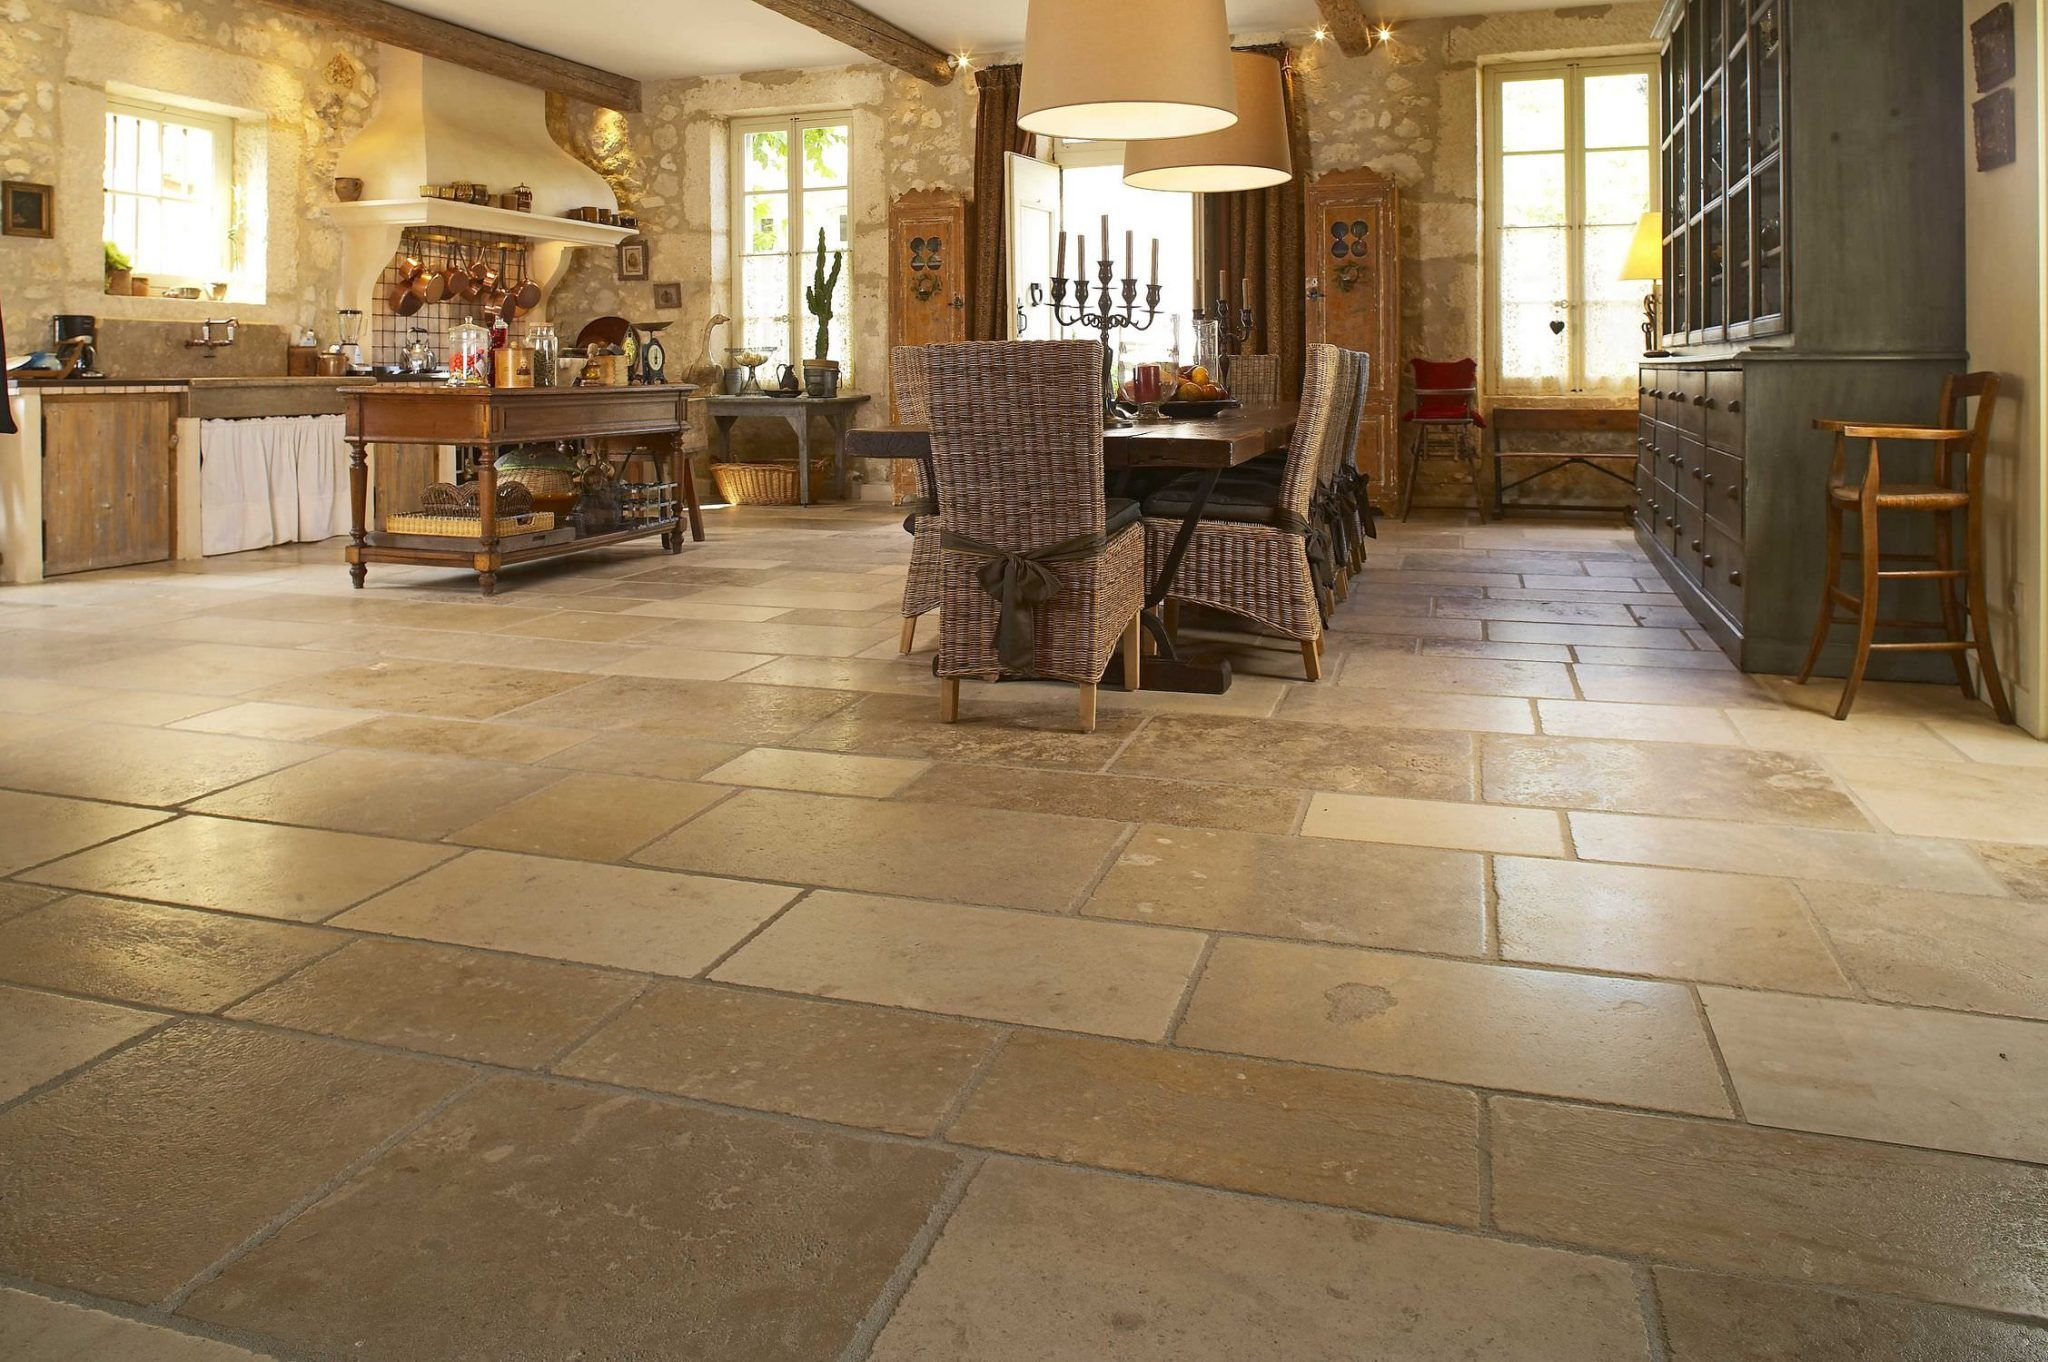 How to maintain and prolong natural stone flooring